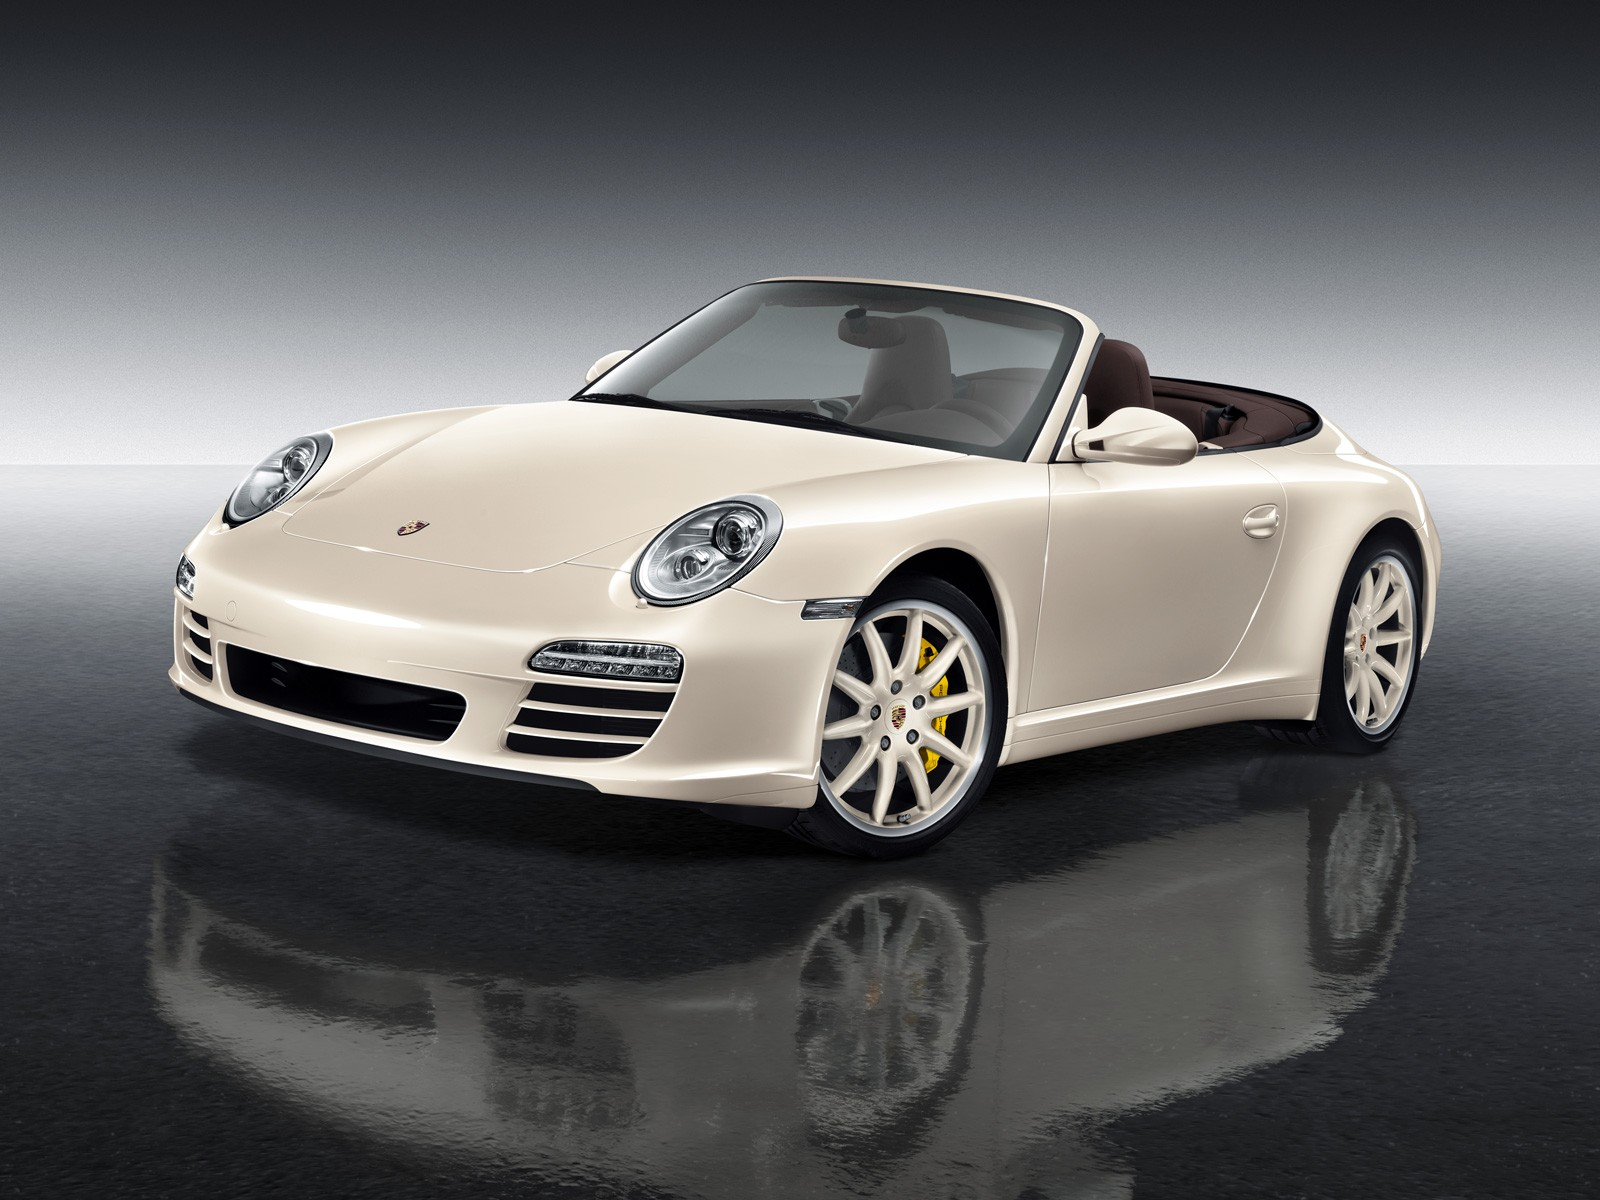 porsche 911 carrera 4s cabriolet 997 specs photos 2008 2009 2010 2011 2012 autoevolution. Black Bedroom Furniture Sets. Home Design Ideas